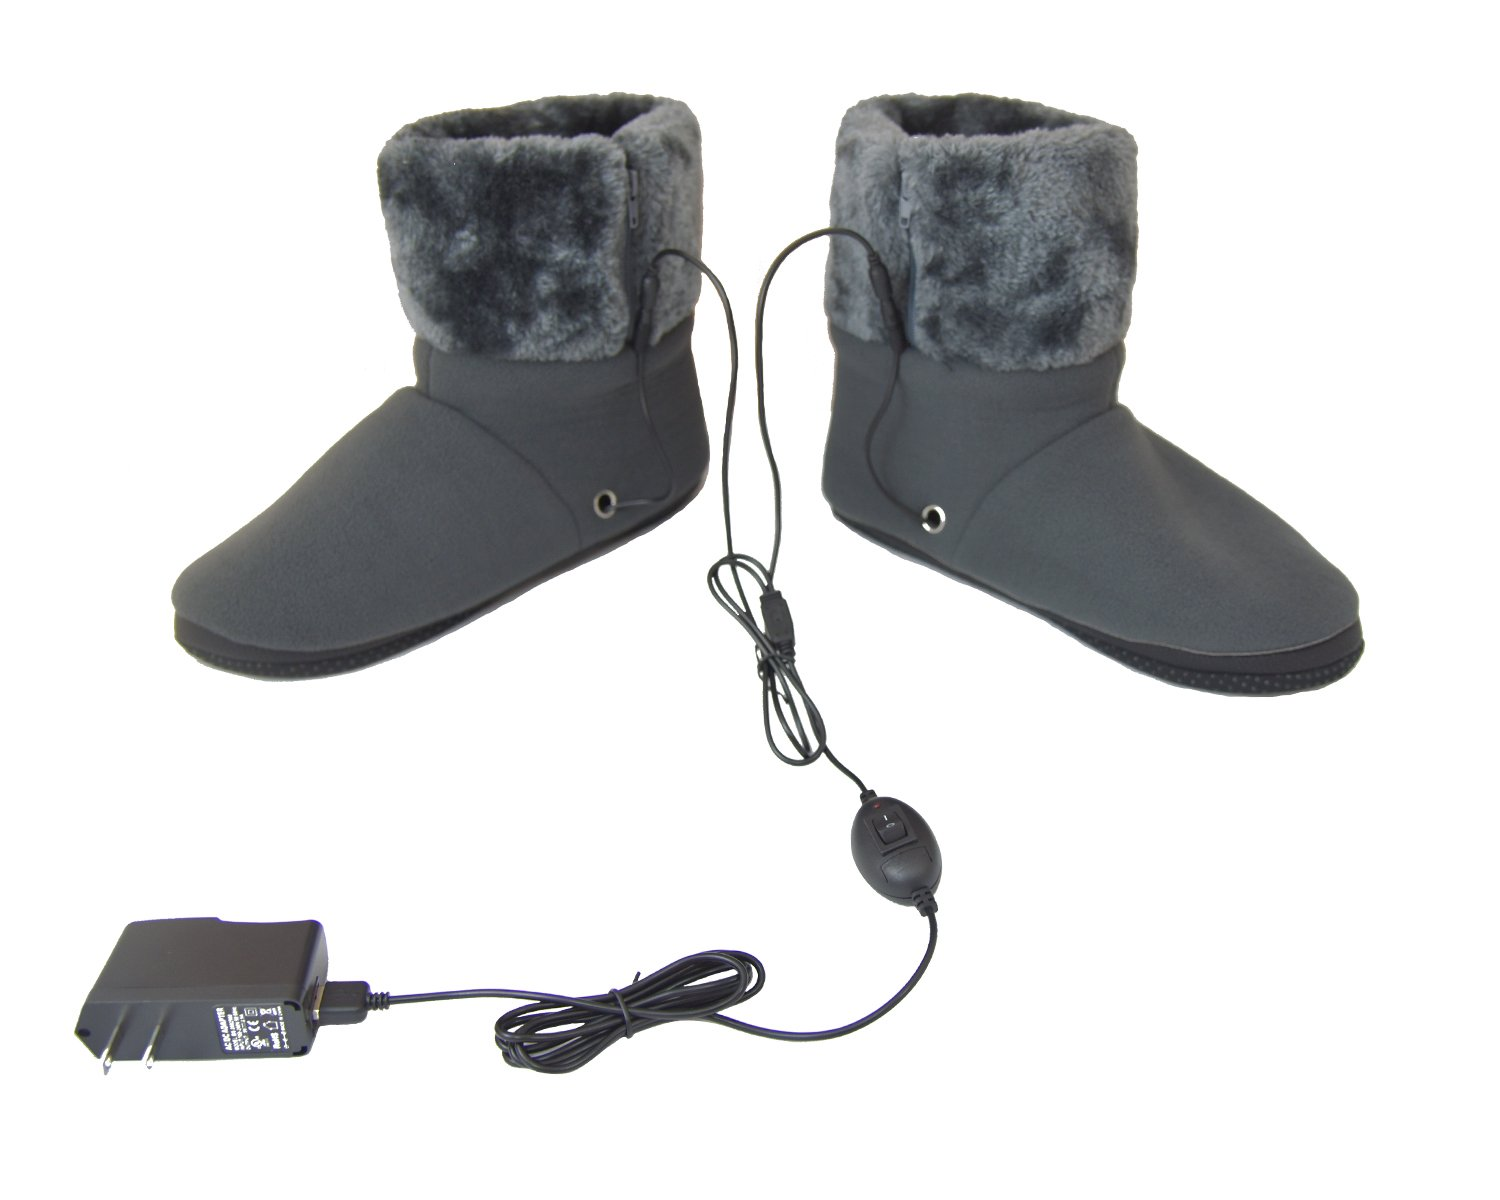 ObboMed® MF-2300L USB 5V 10W Cozy Carbon Fiber Heated Warming Booties Soft Sole – Size: L: #45.5 (fits foot up to 45.5) -Heating Slippers, Infrared Shoe, Warm Pad, Foot Heater, Cold feet solution